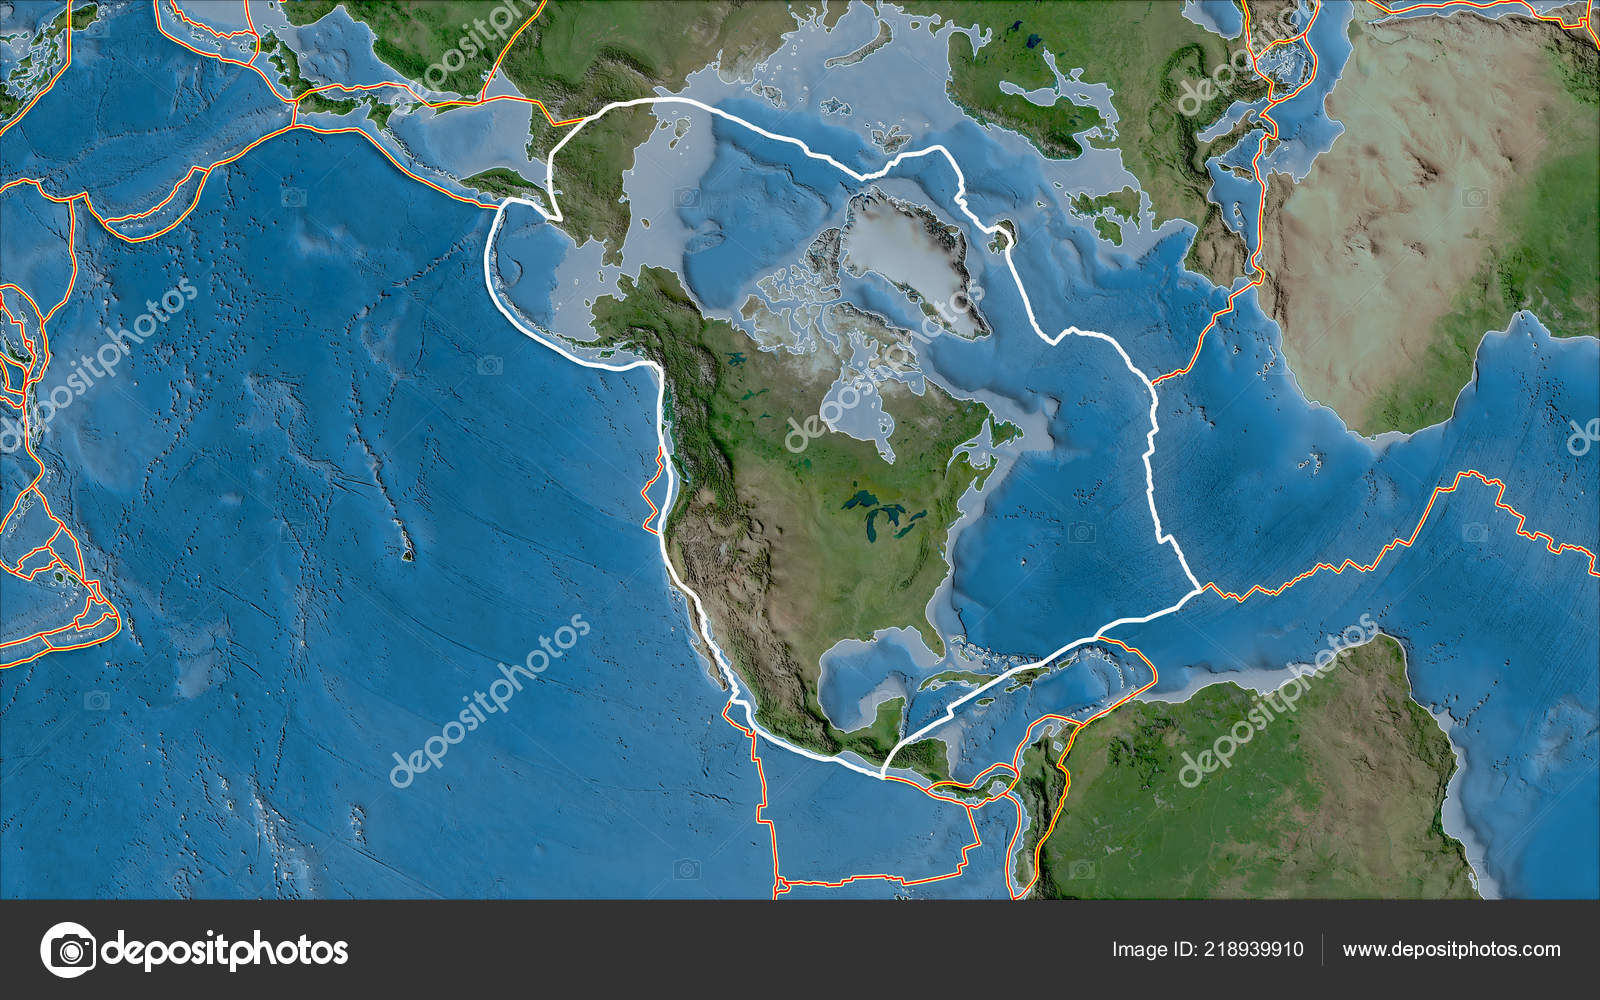 Outlined North American Tectonic Plate Borders Adjacent Plates